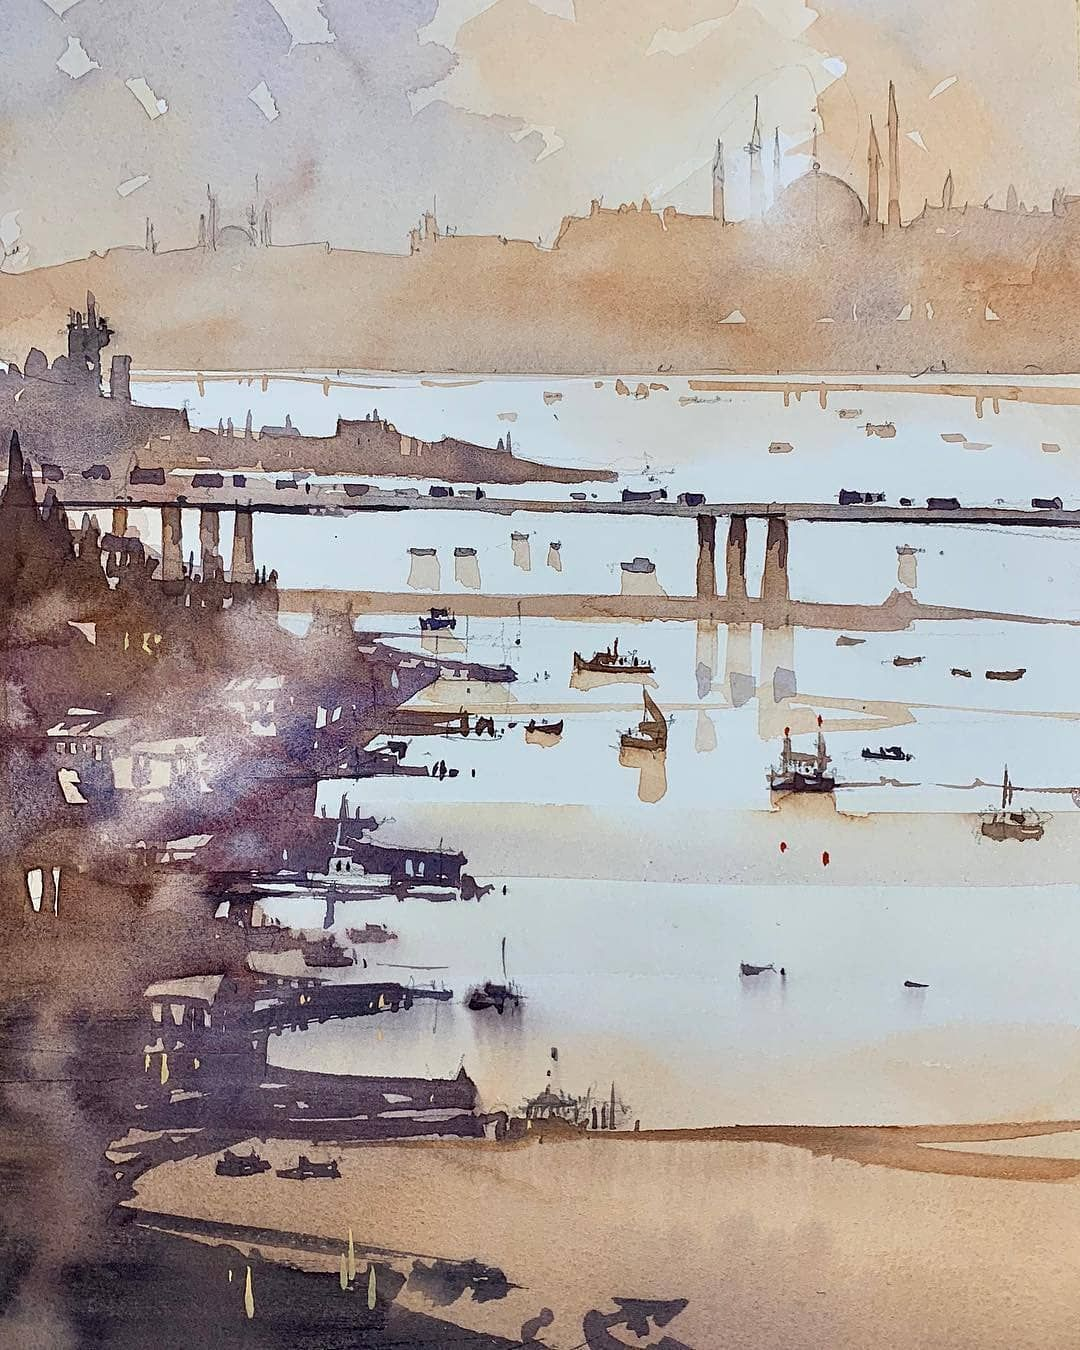 The Best Watercolor On Instagram Watercolor By Iain Stewart